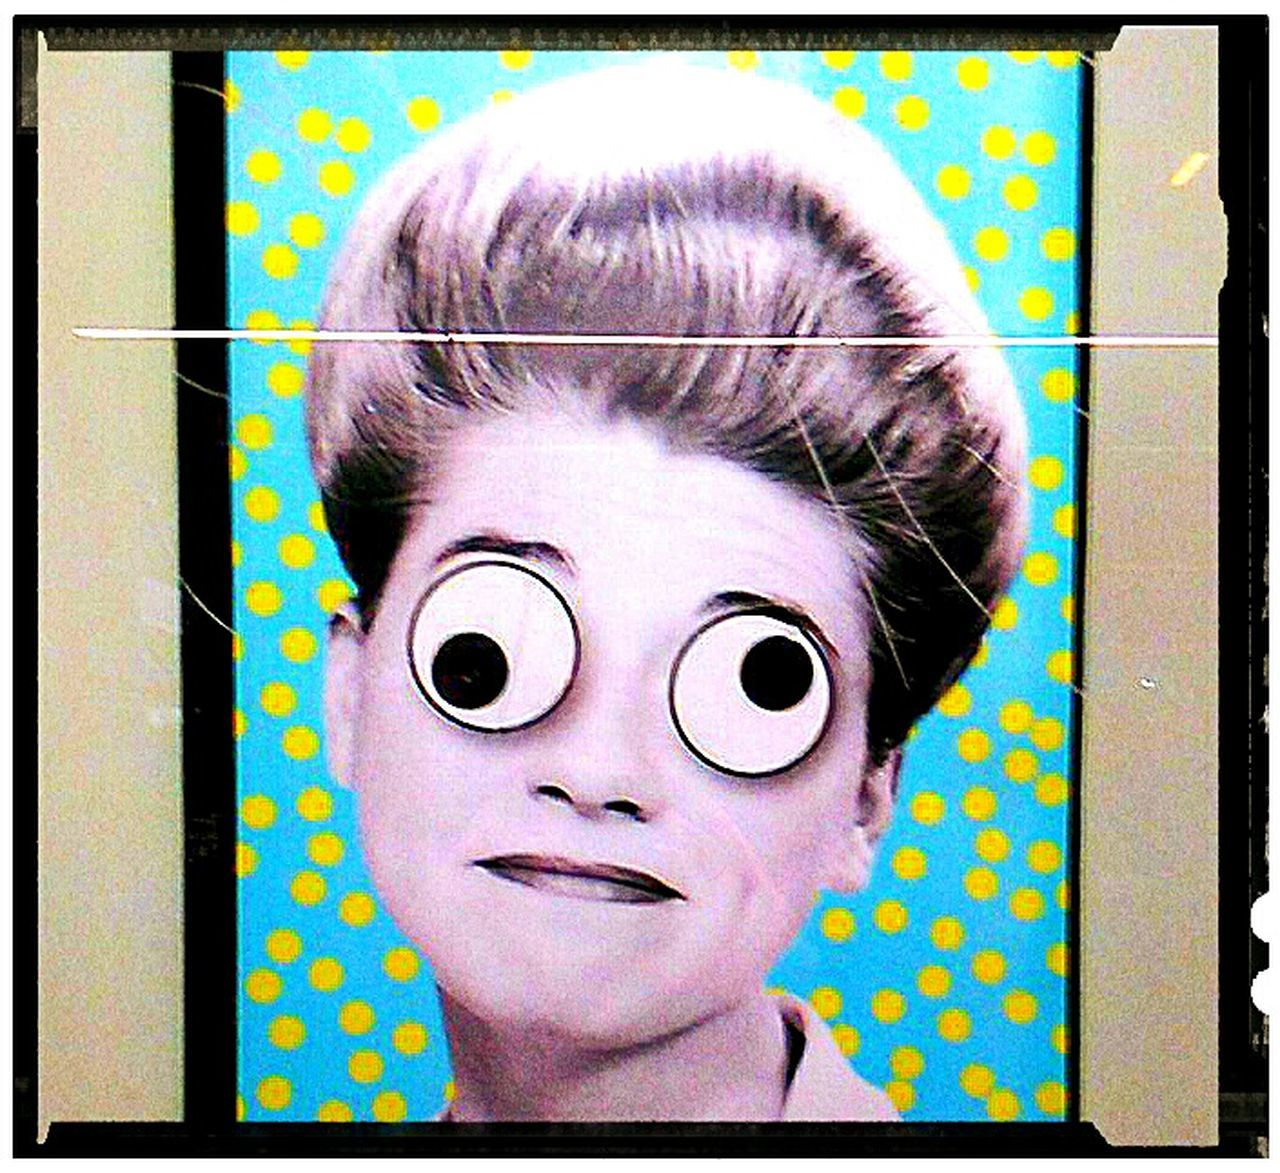 Strange Face Strangelooking Weird Face Weirdfaces Weirdography HEAD What The F**k, Is This ? Funny Faces Funny Face Crazy Eyes Strange Faces Something Different WTF LOL